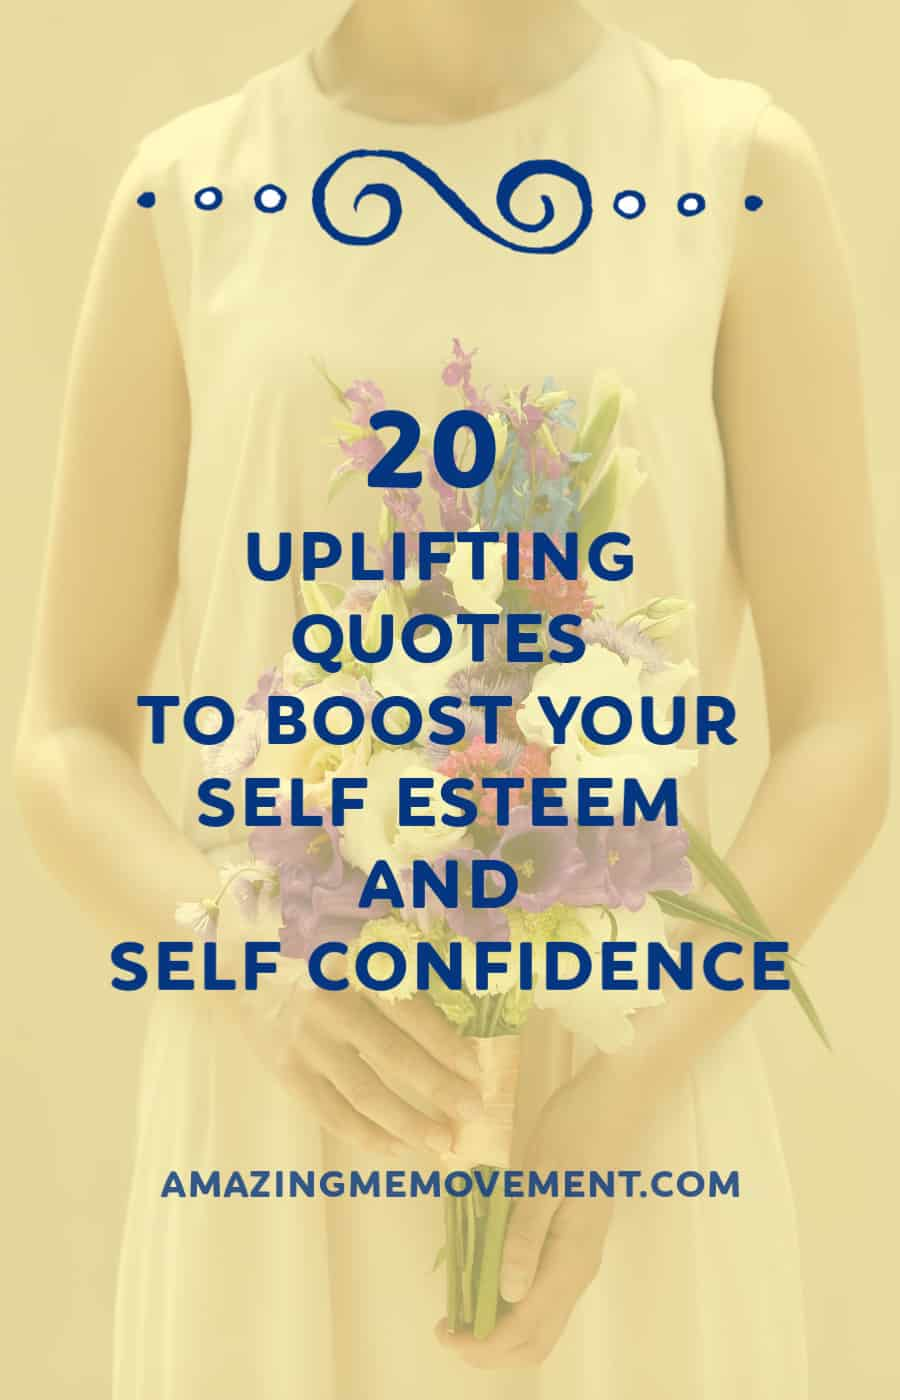 20 uplifting quotes to boost your self esteem